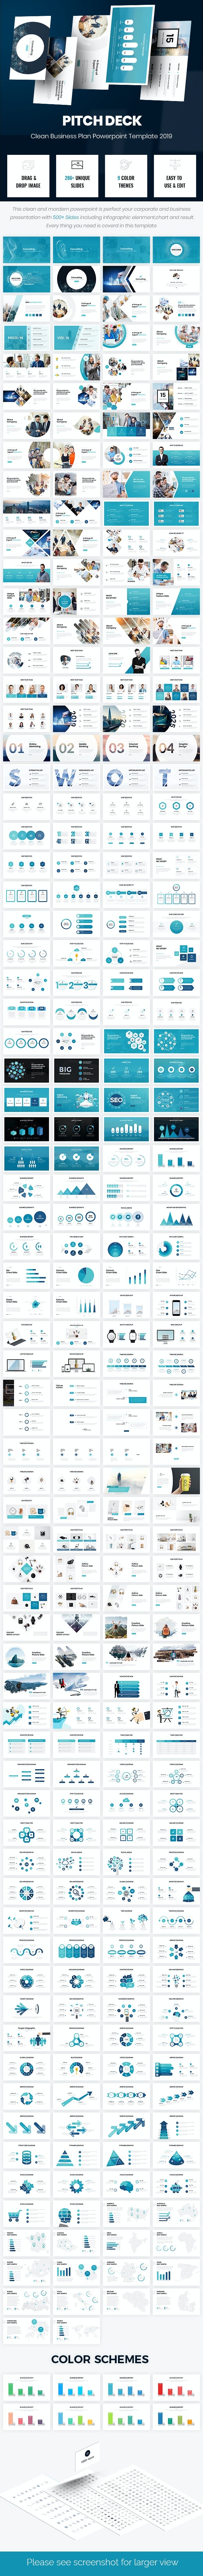 2 in 1 Pitch Deck Bundle Powerpoint Template 2019 - Business PowerPoint Templates